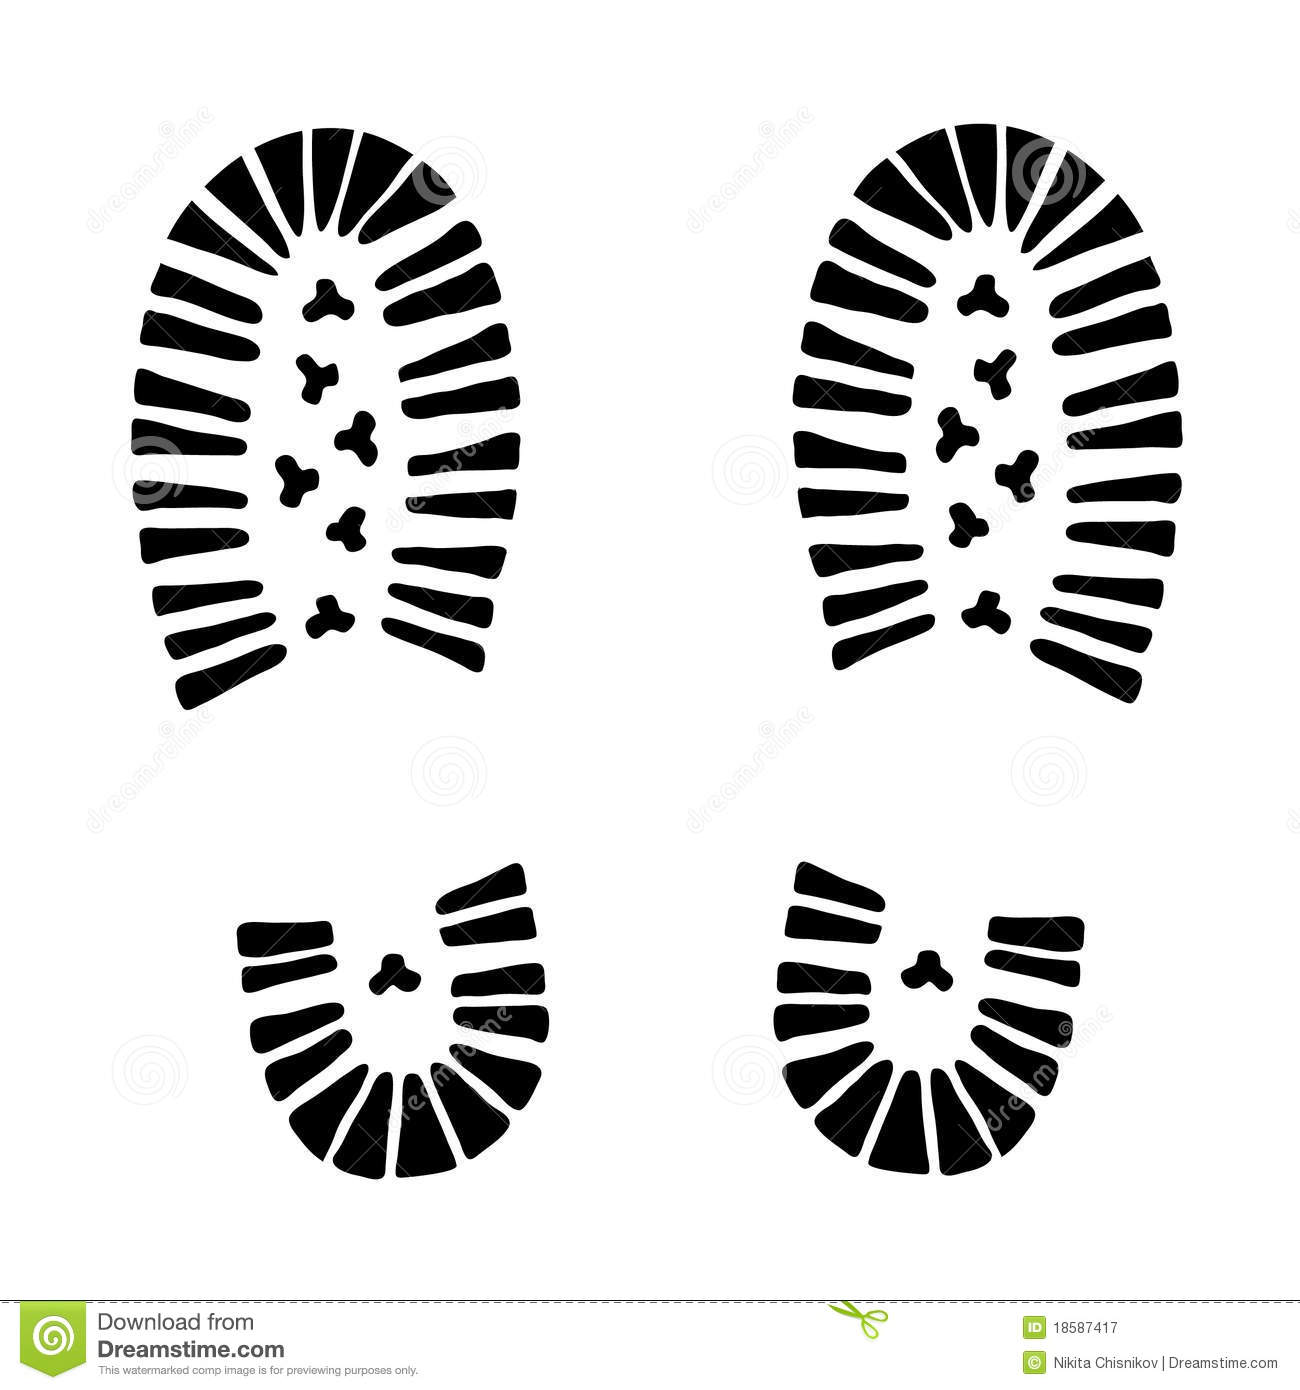 Footprint clipart boot tracks Boot Art Print shoe print